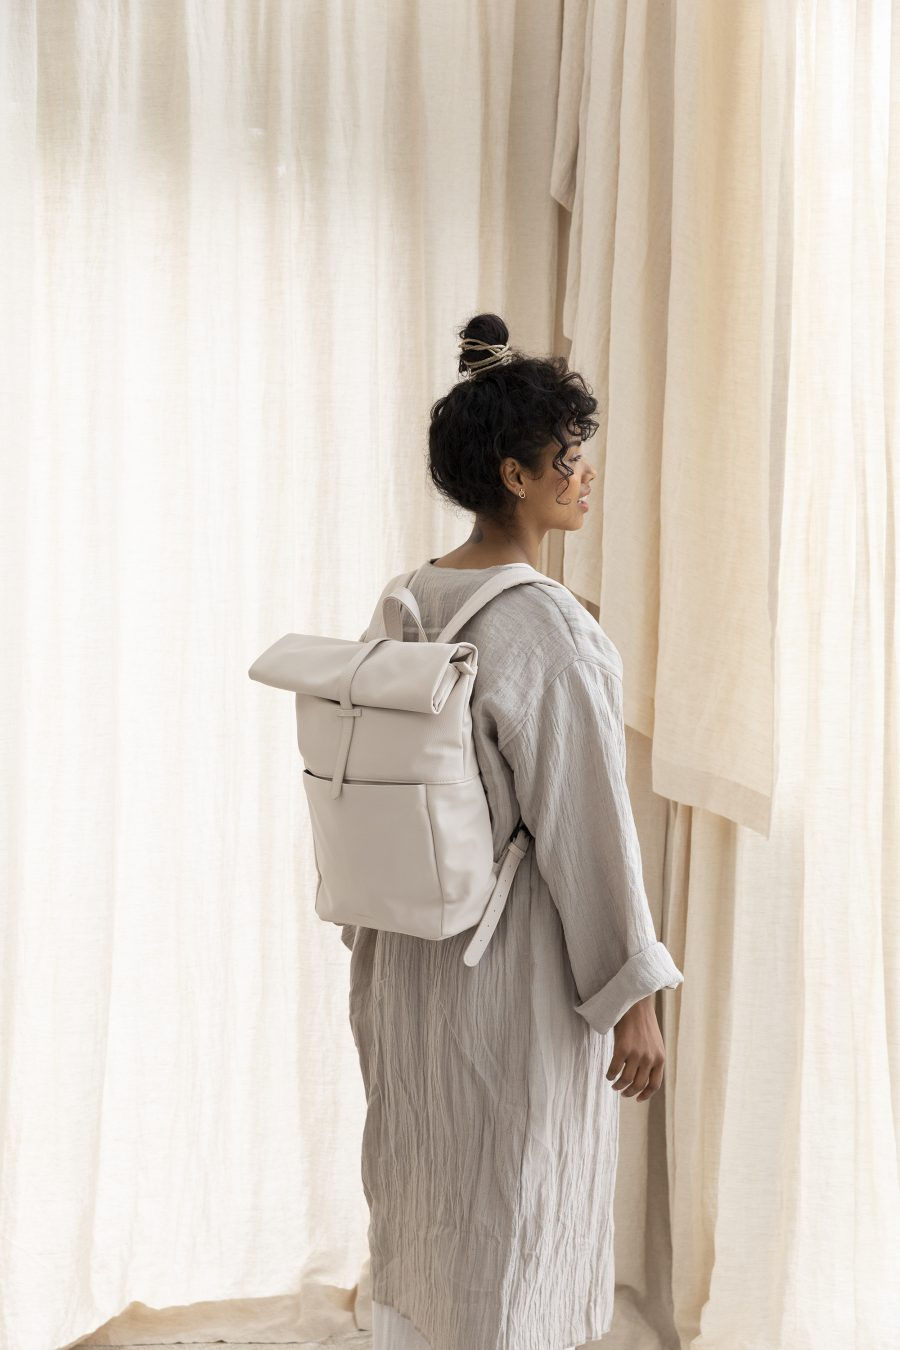 1601361 – Monk & Anna – Herb backpack – Nude